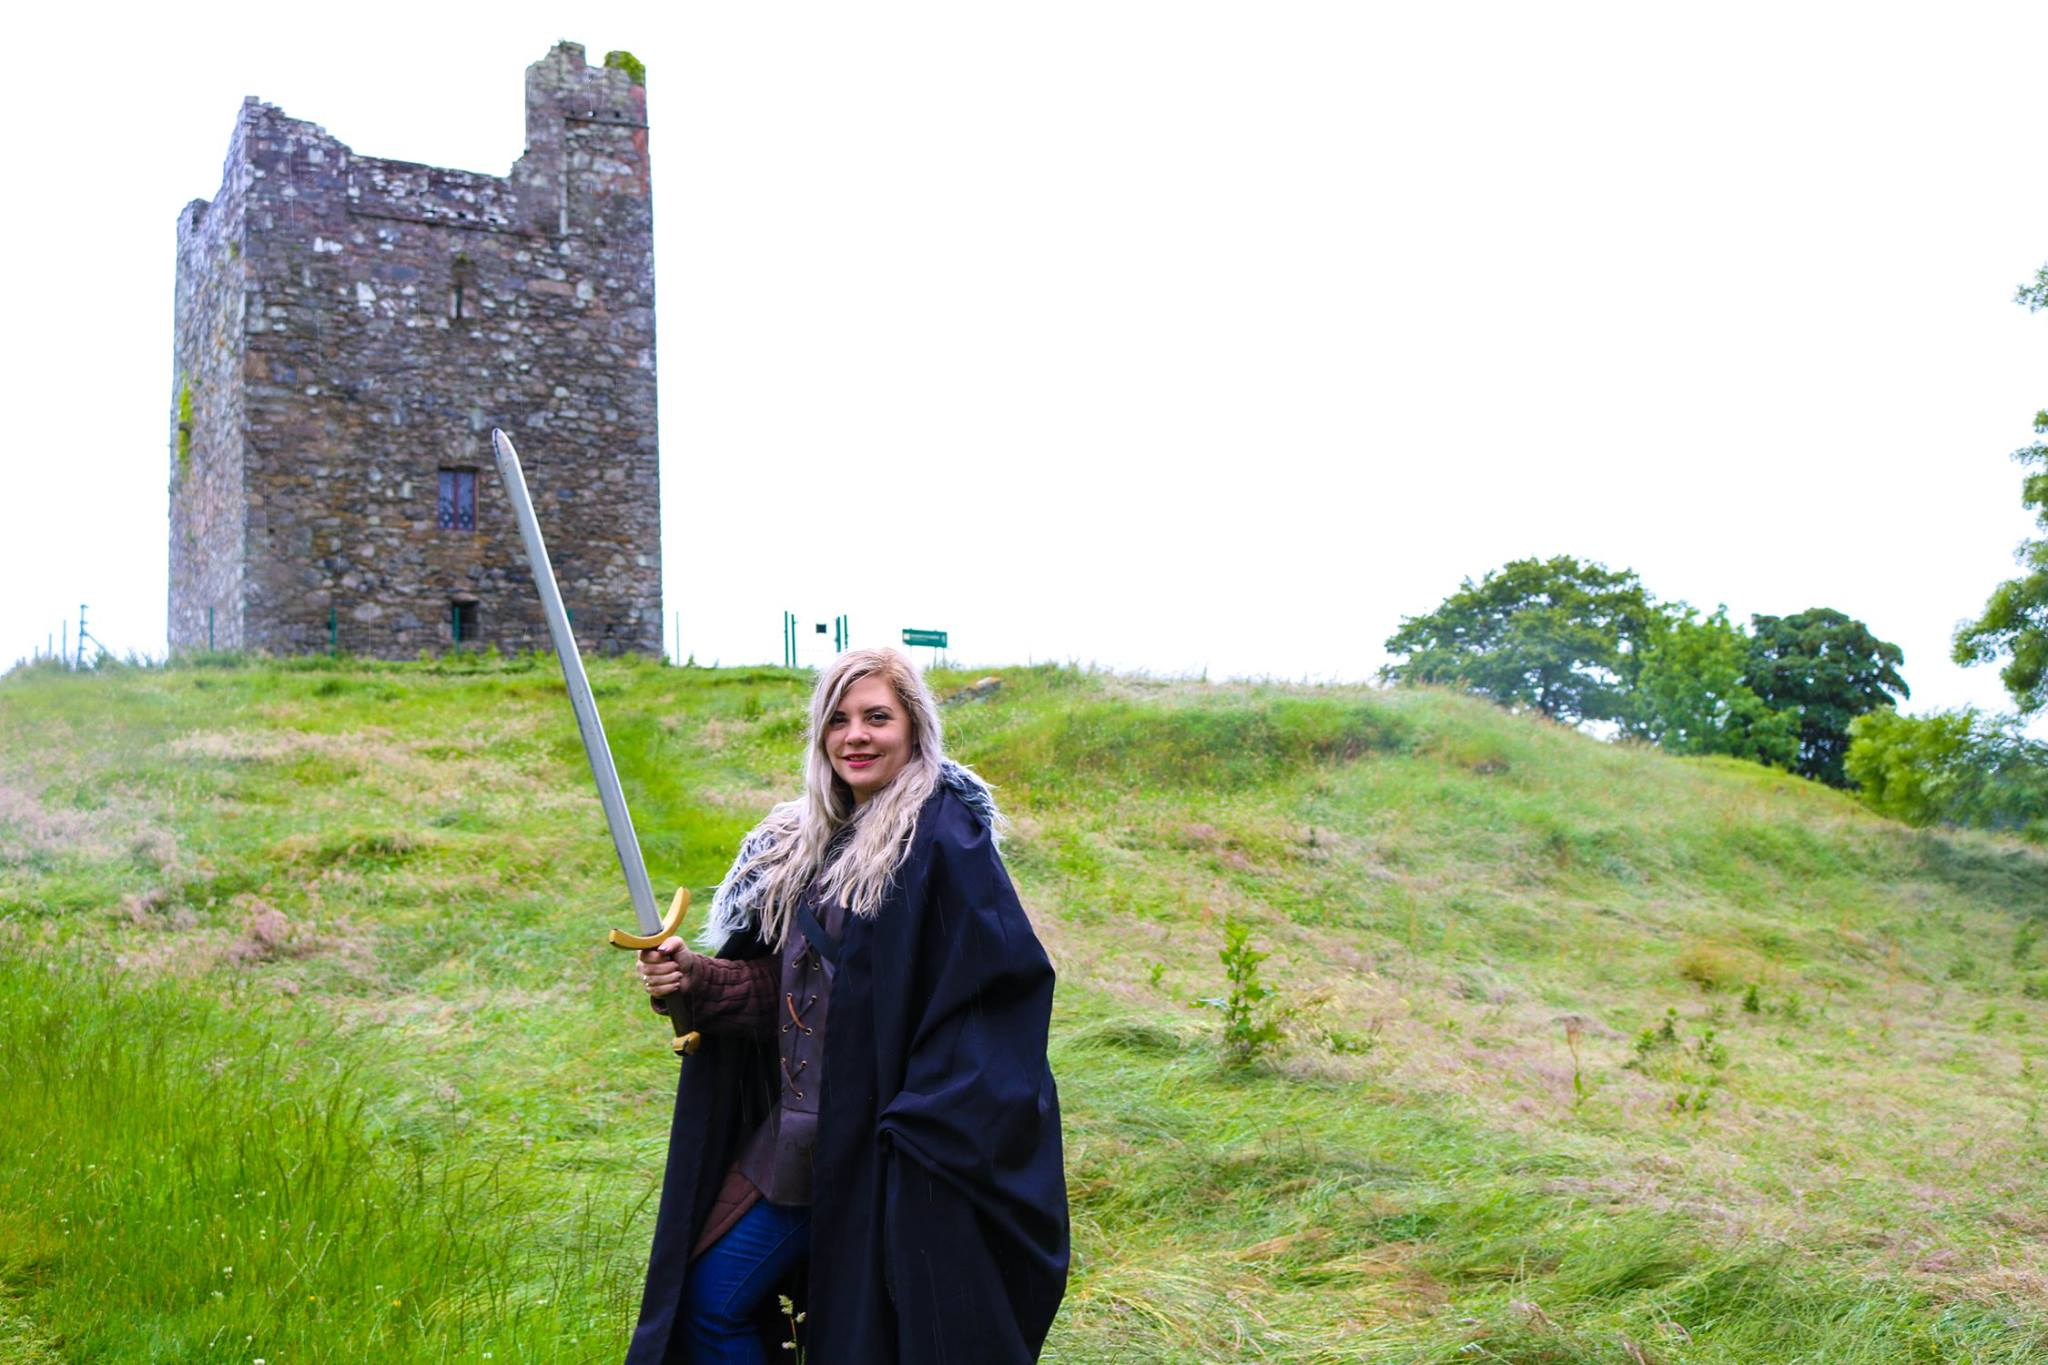 Game of Thrones fiming locations in Northern Ireland